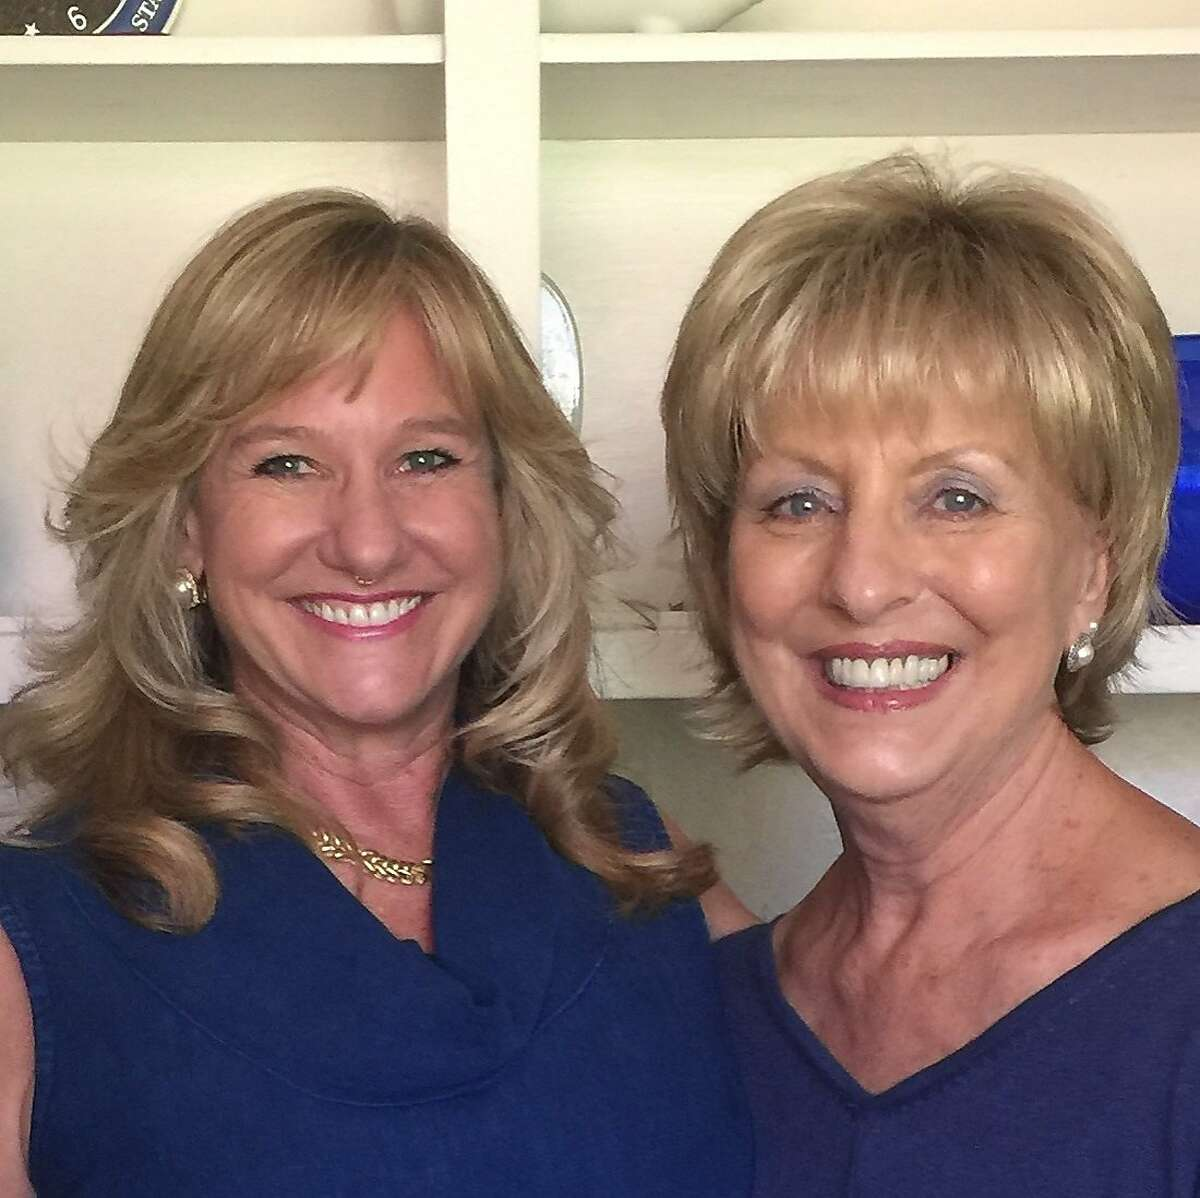 Margaret Wardlow (left) with Carol Daly, one of the detectives who worked on her case. The two reunited 40 years later.